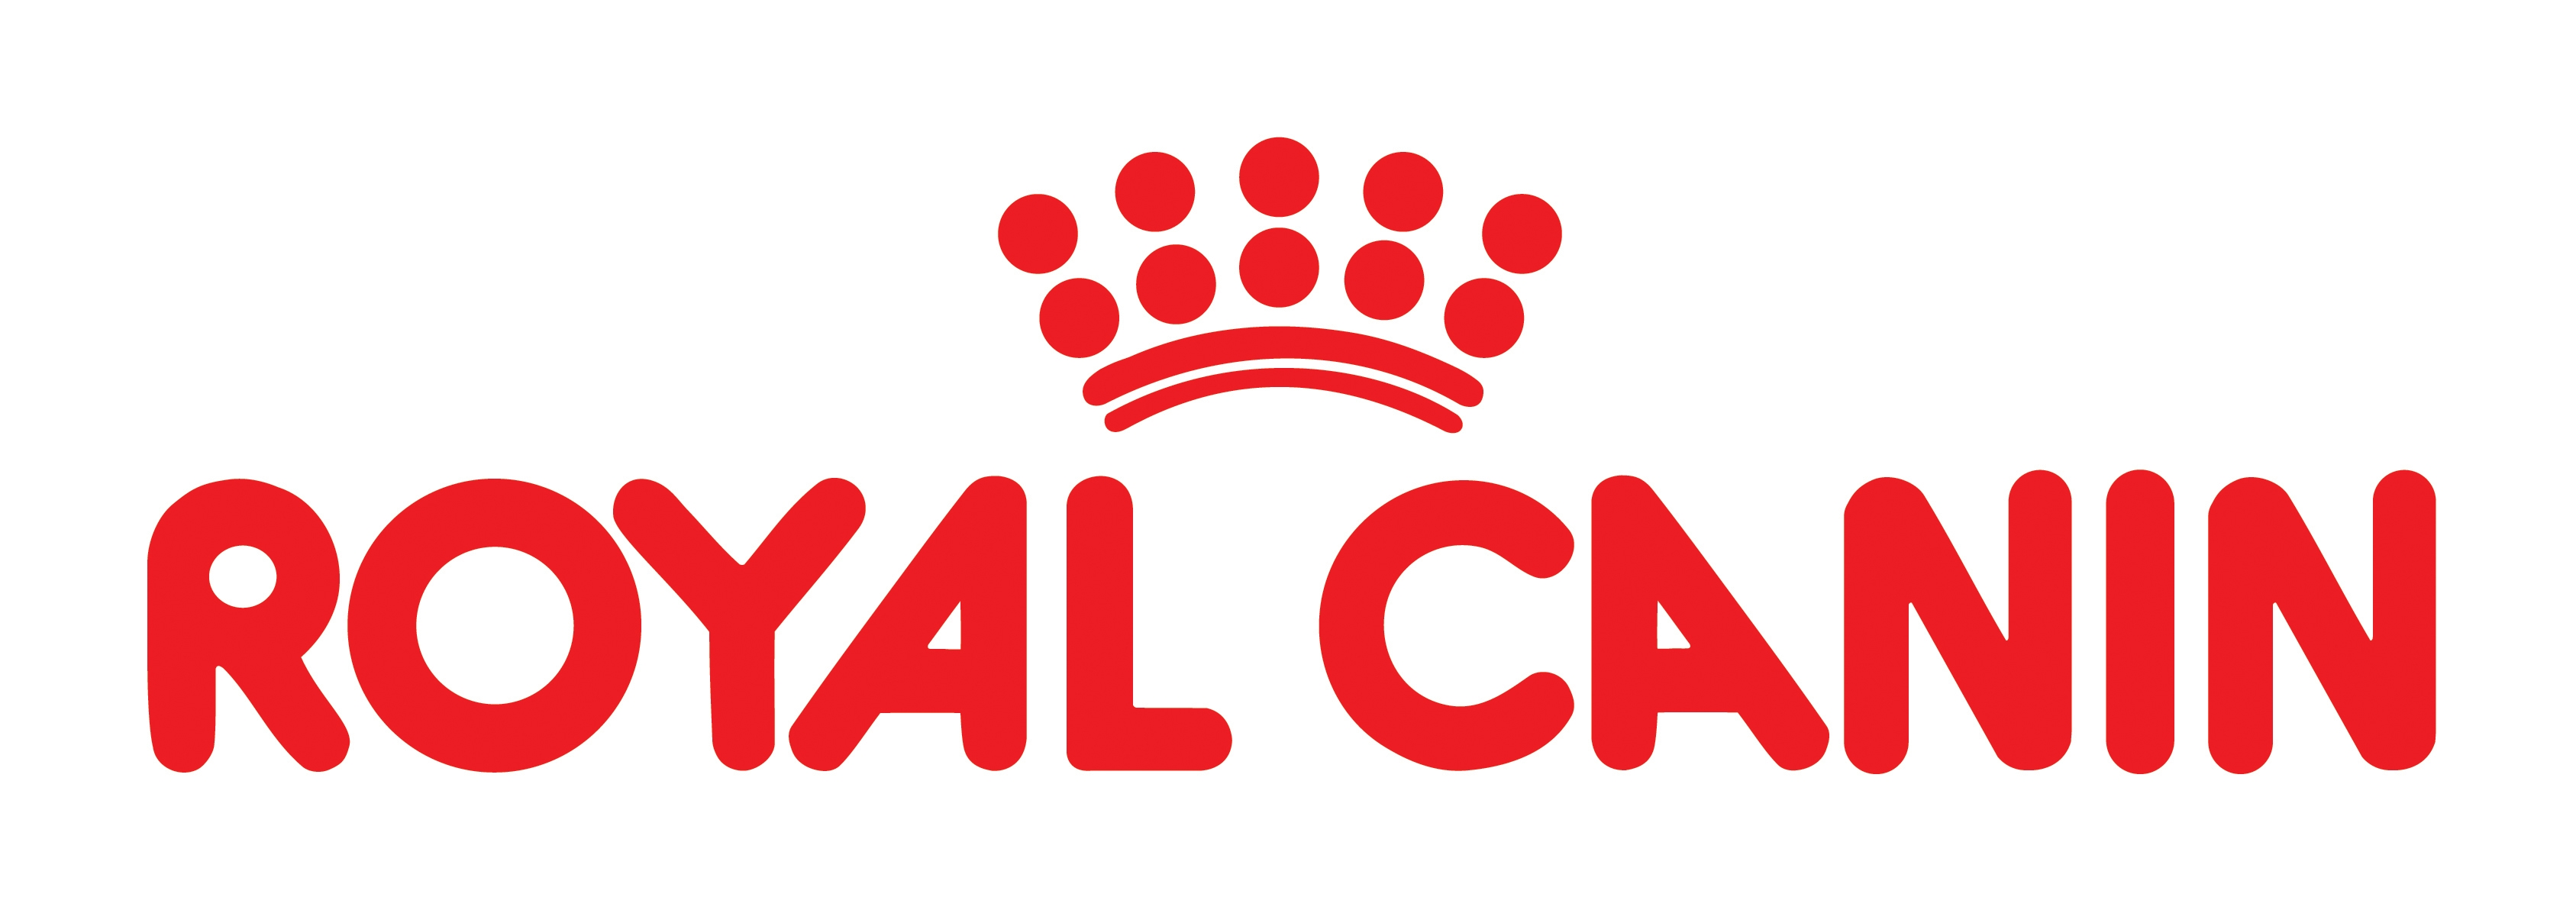 Exciting New Partnership with Royal Canin Canada! - Ontario SPCA ...